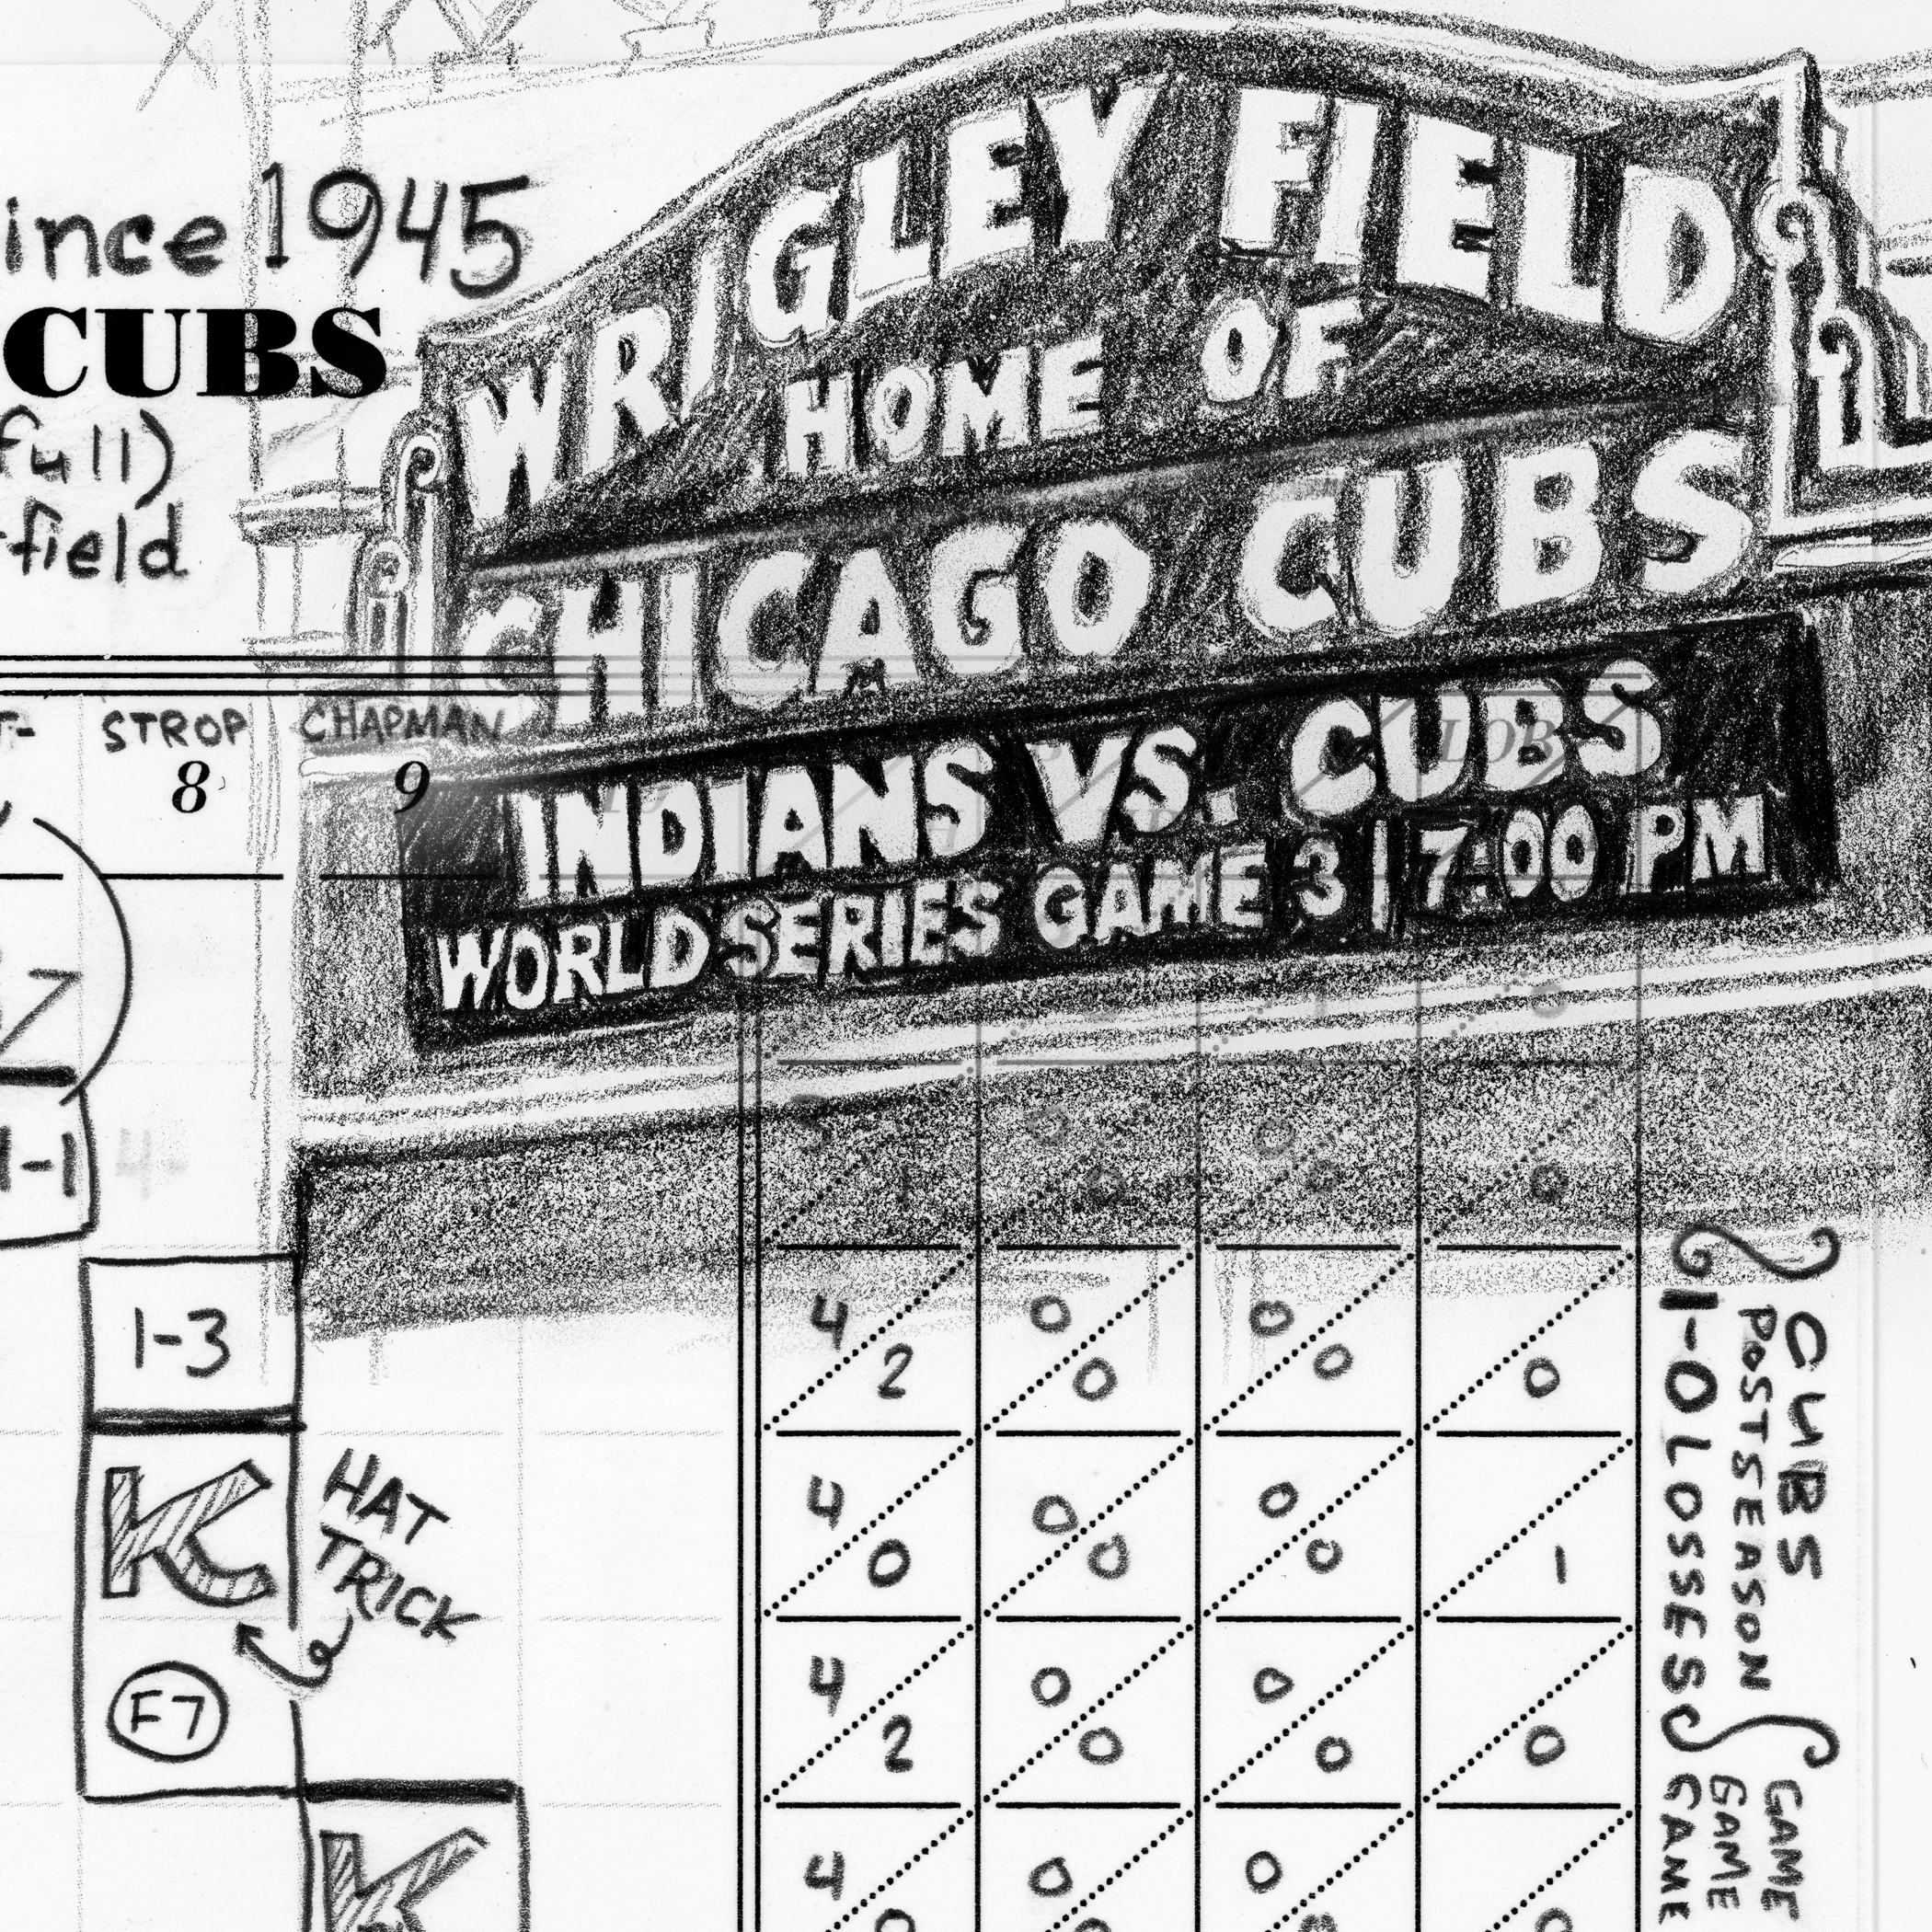 Wrigley Field home to Game 3 of 2016 World Series